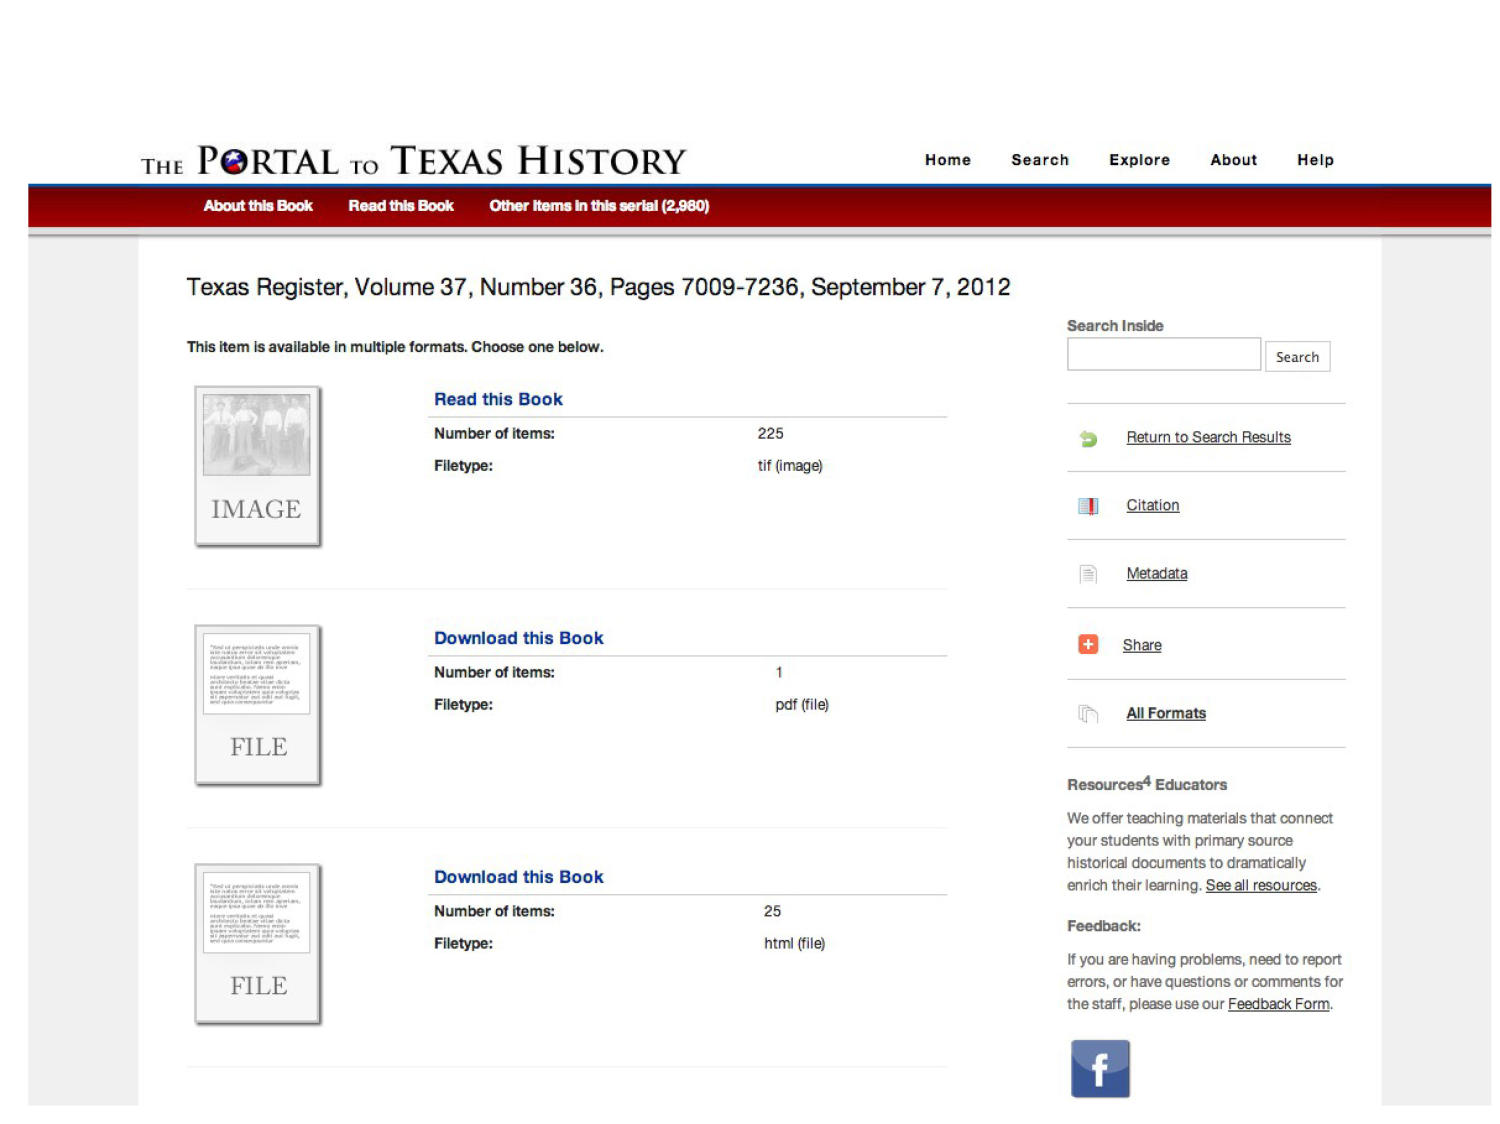 The Portal to Texas History: Technology Overview                                                                                                      [Sequence #]: 18 of 73